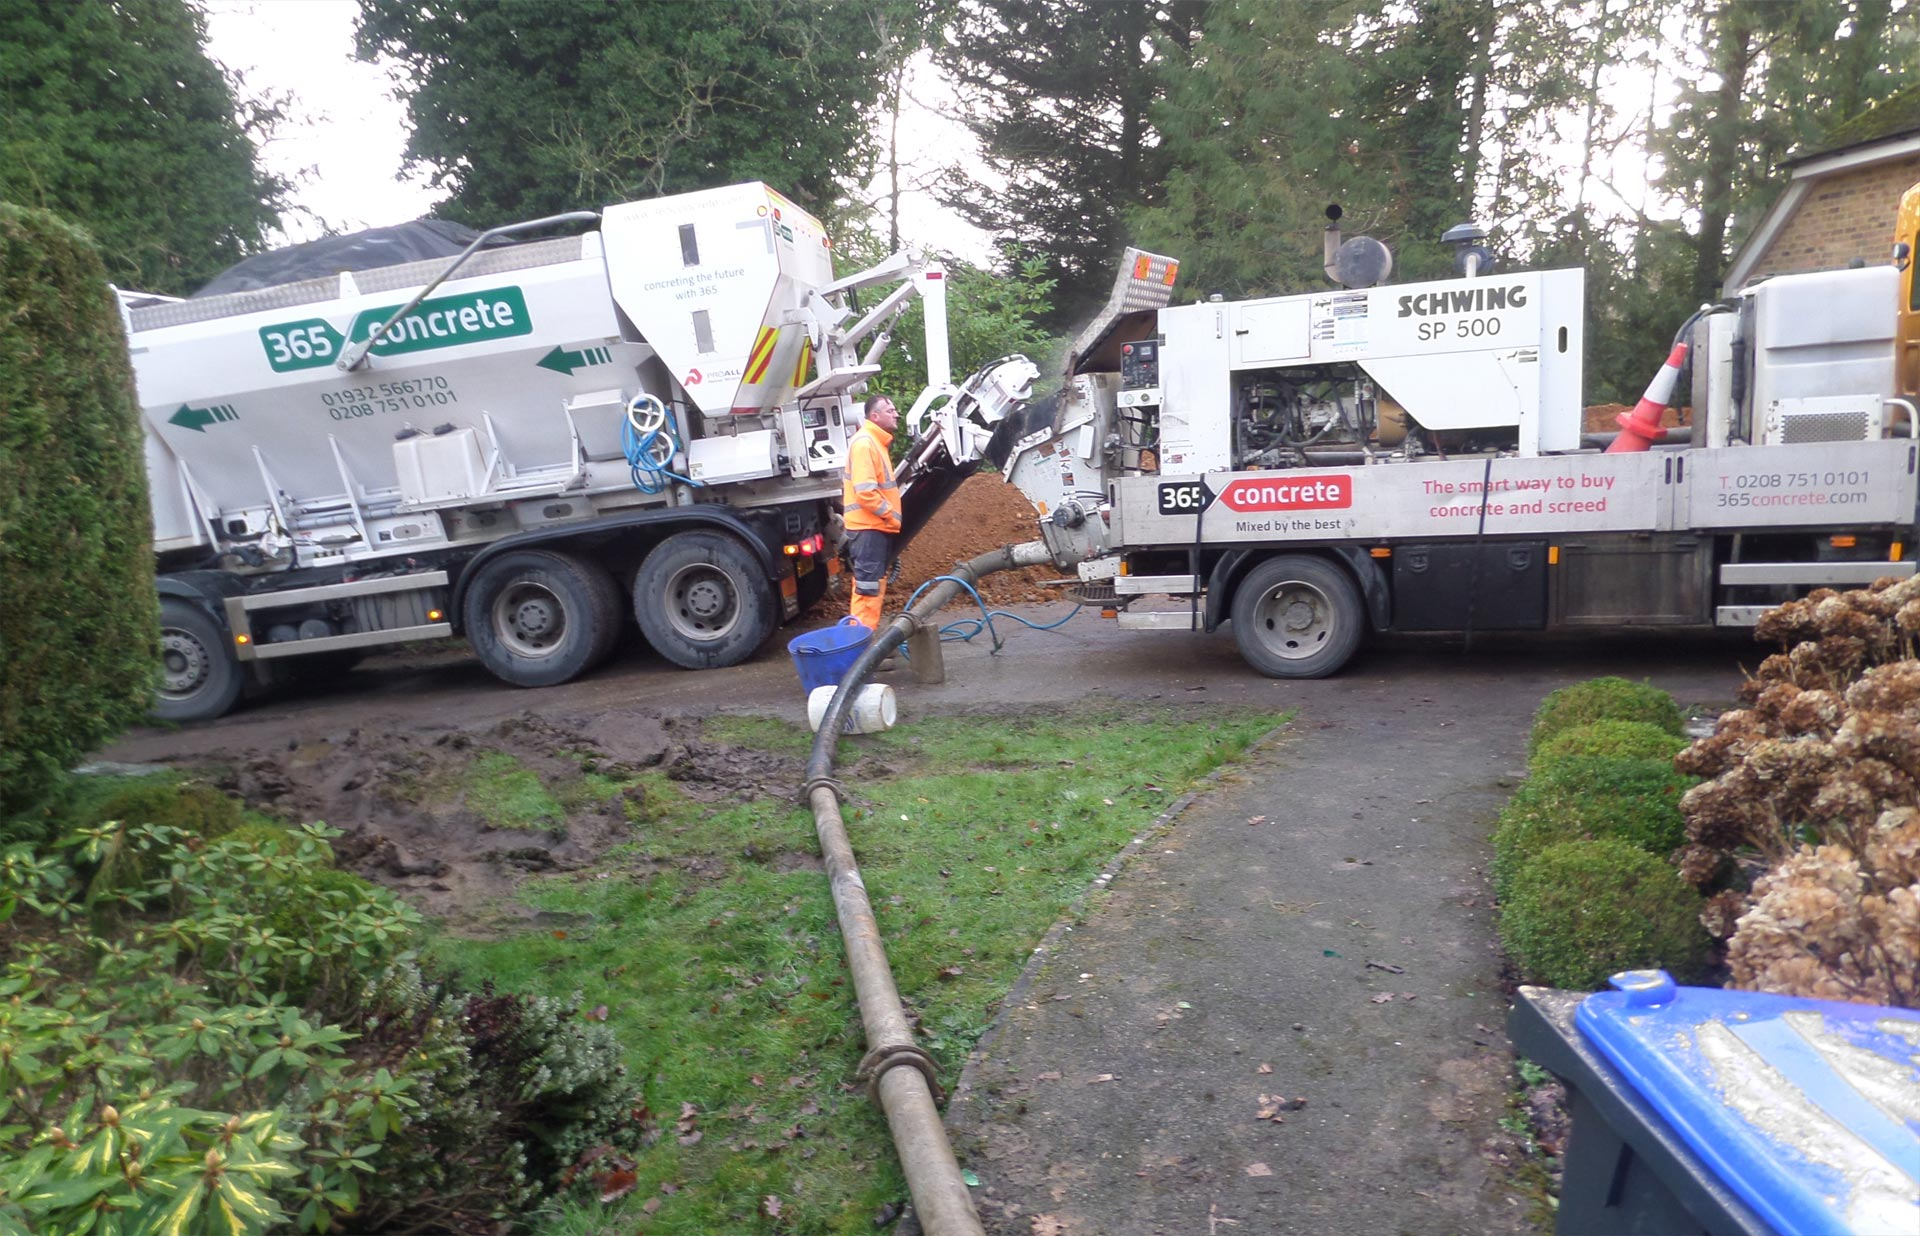 Ground Line Pump Hire with 365 Concrete